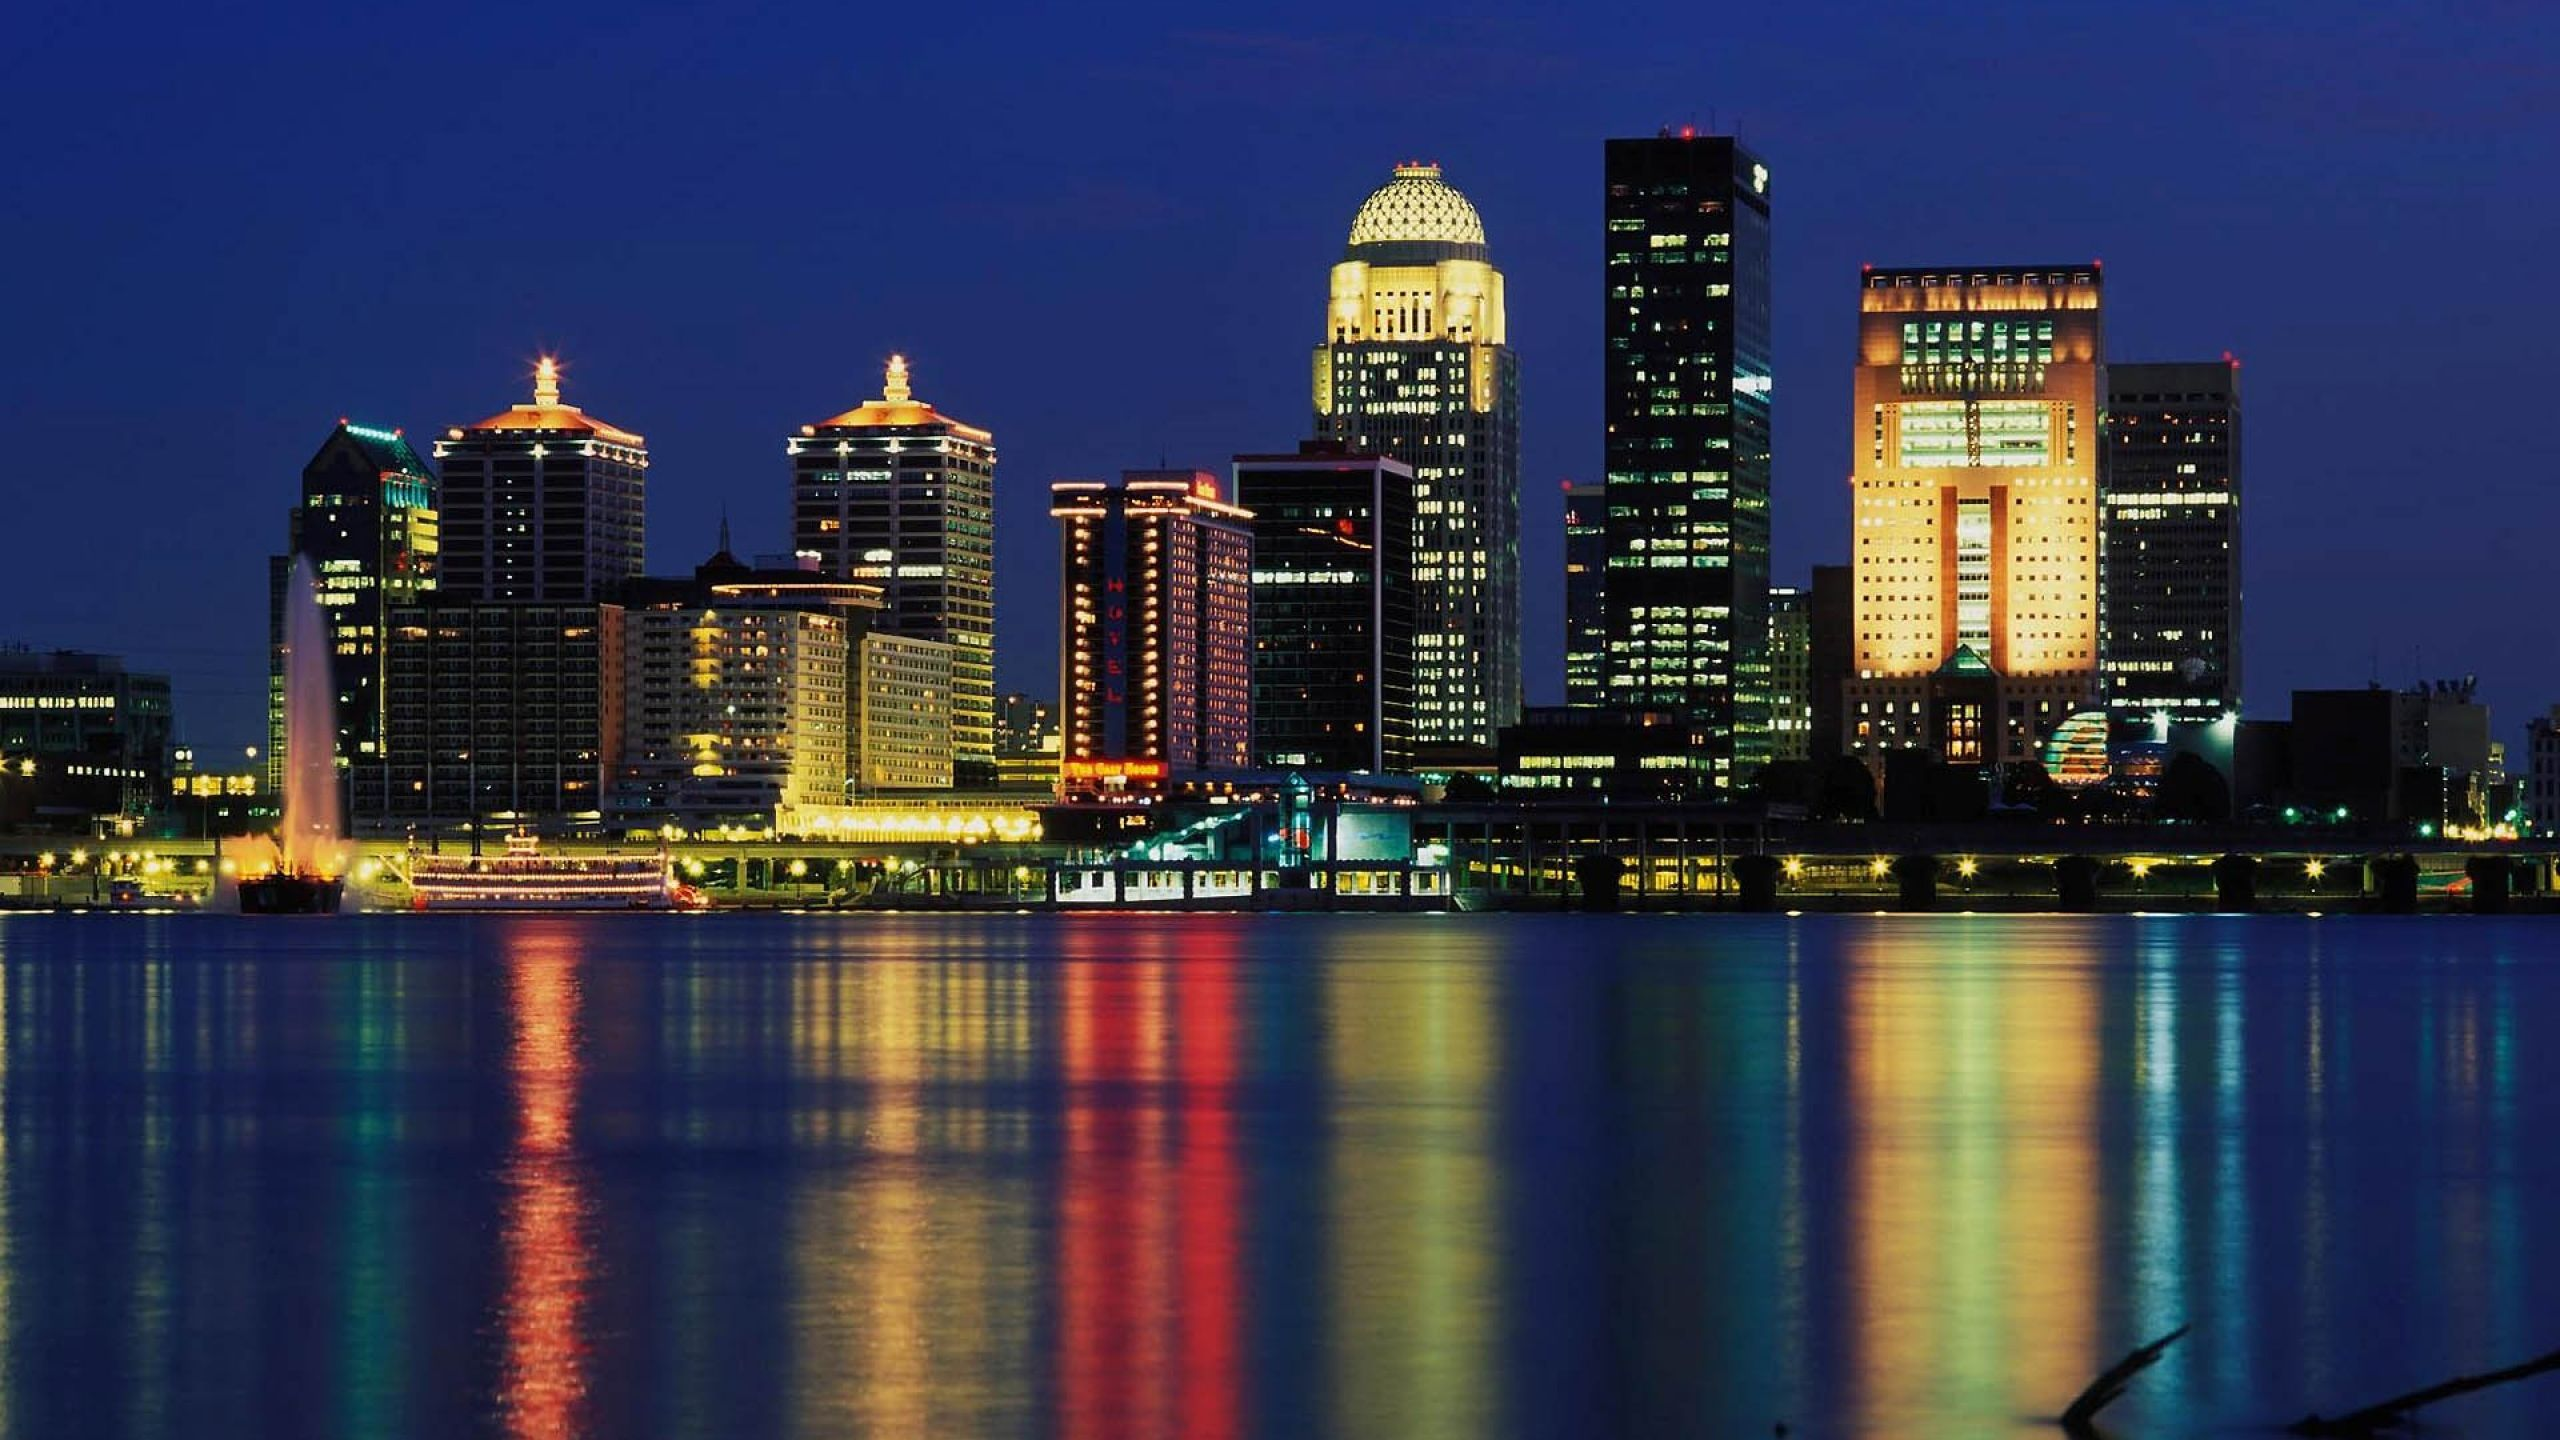 Wallpaper Louisville Download Wallpaper 2560x1440 Louisville Skyline Usa Skyscraper